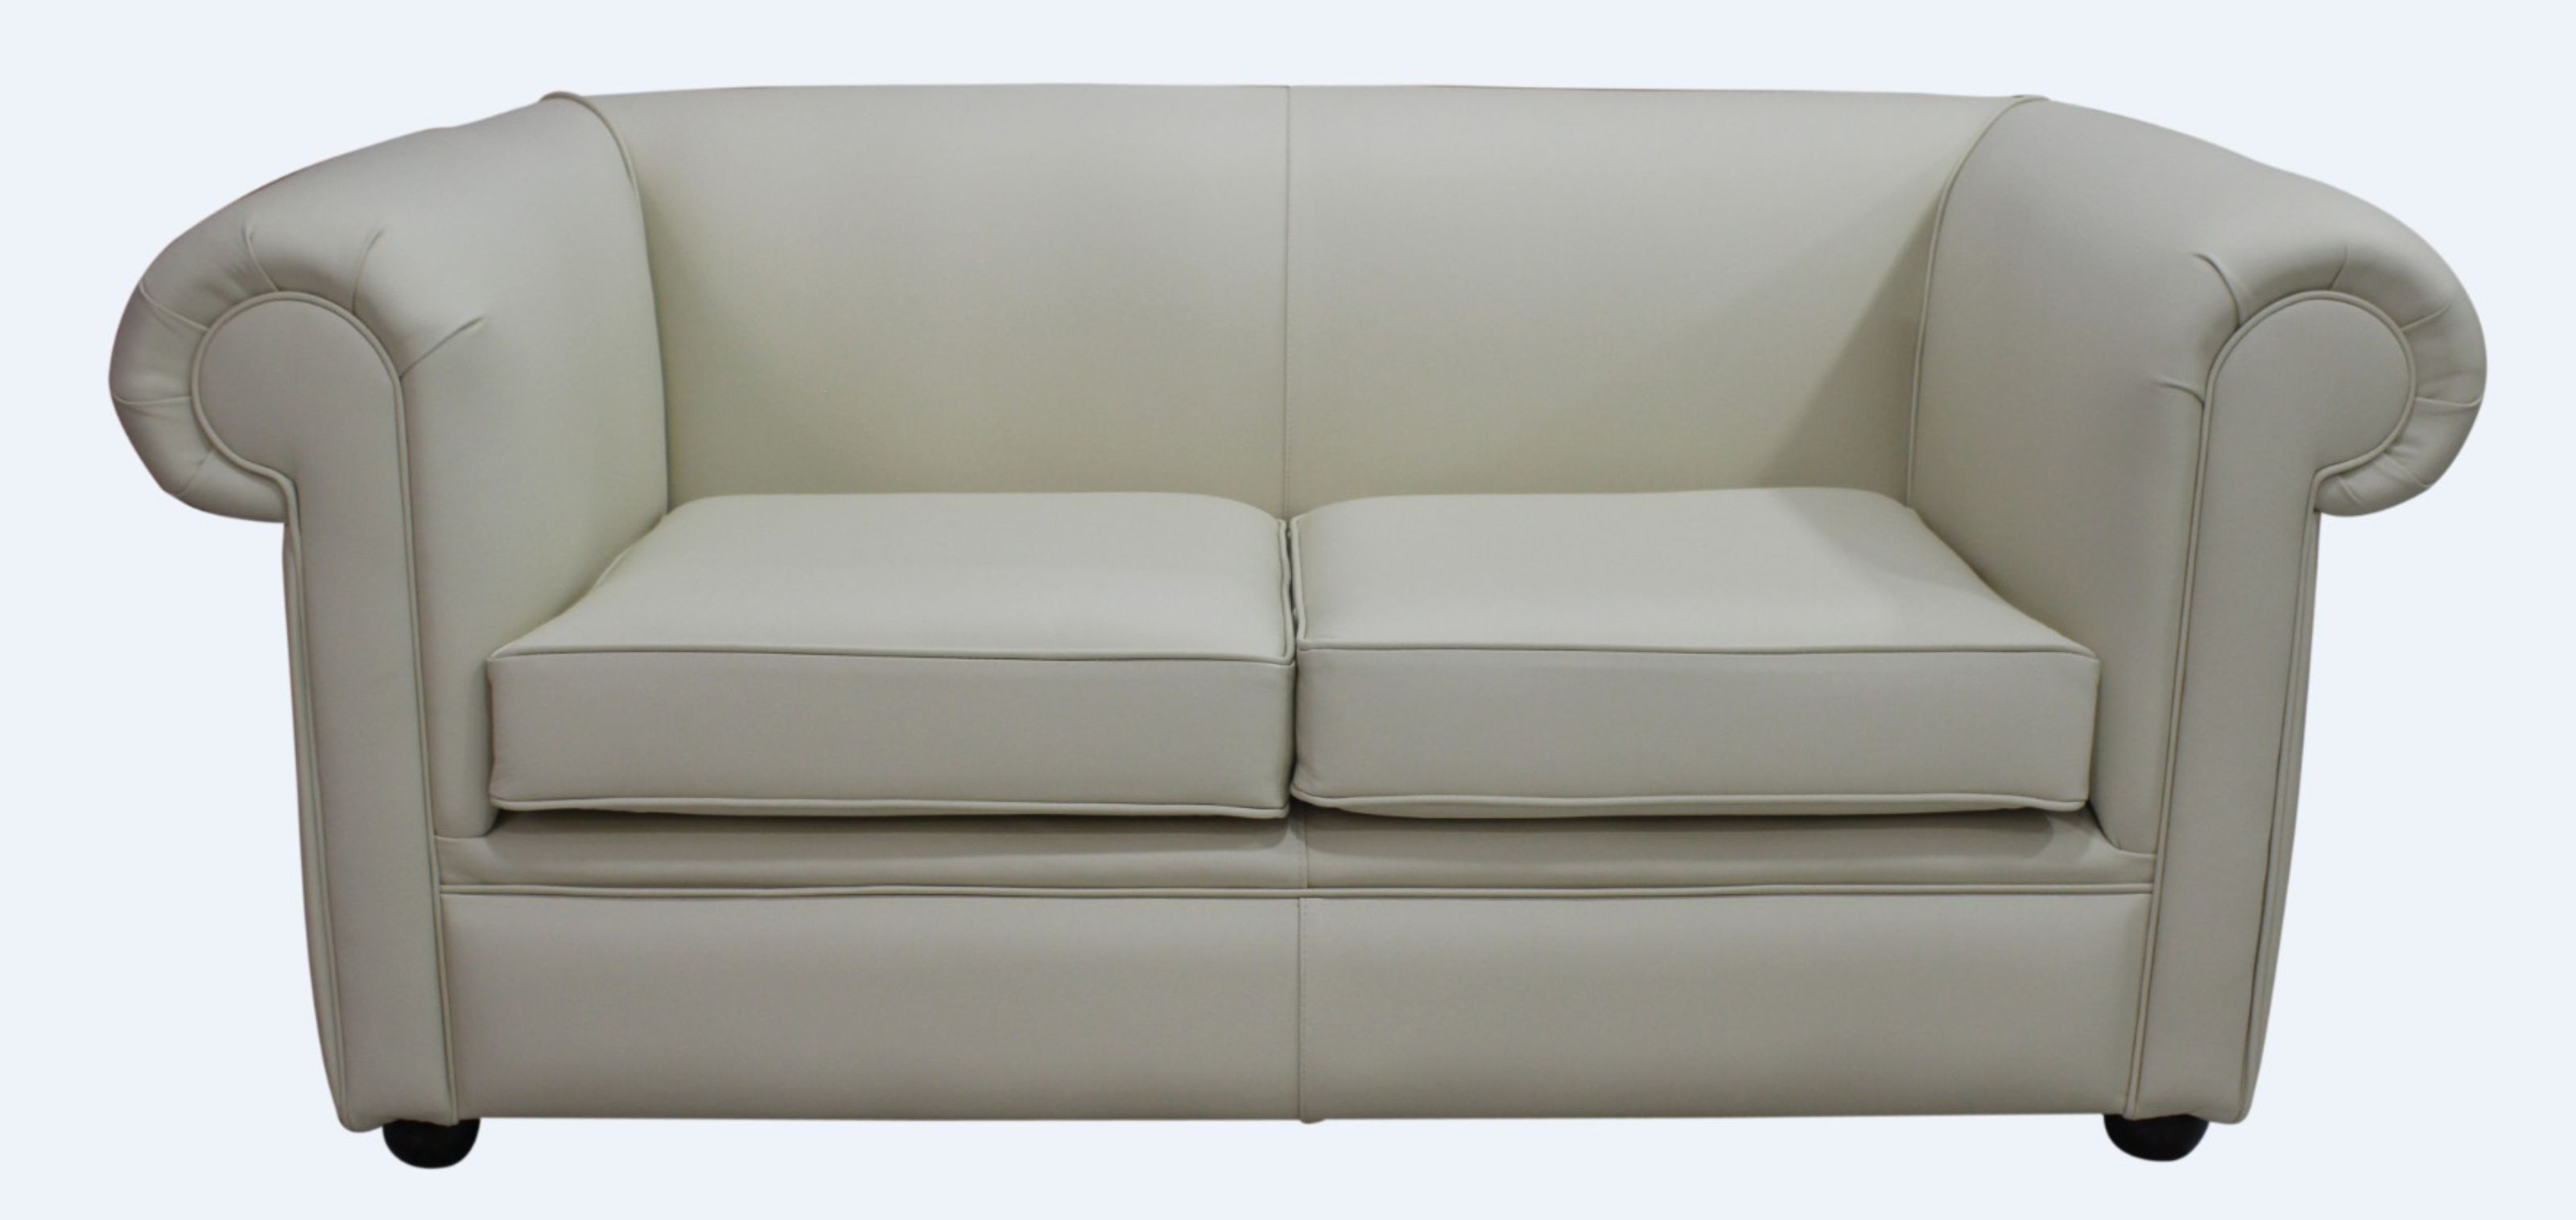 Chesterfield 1930\'s 2 Seater Settee Cream Leather Sofa